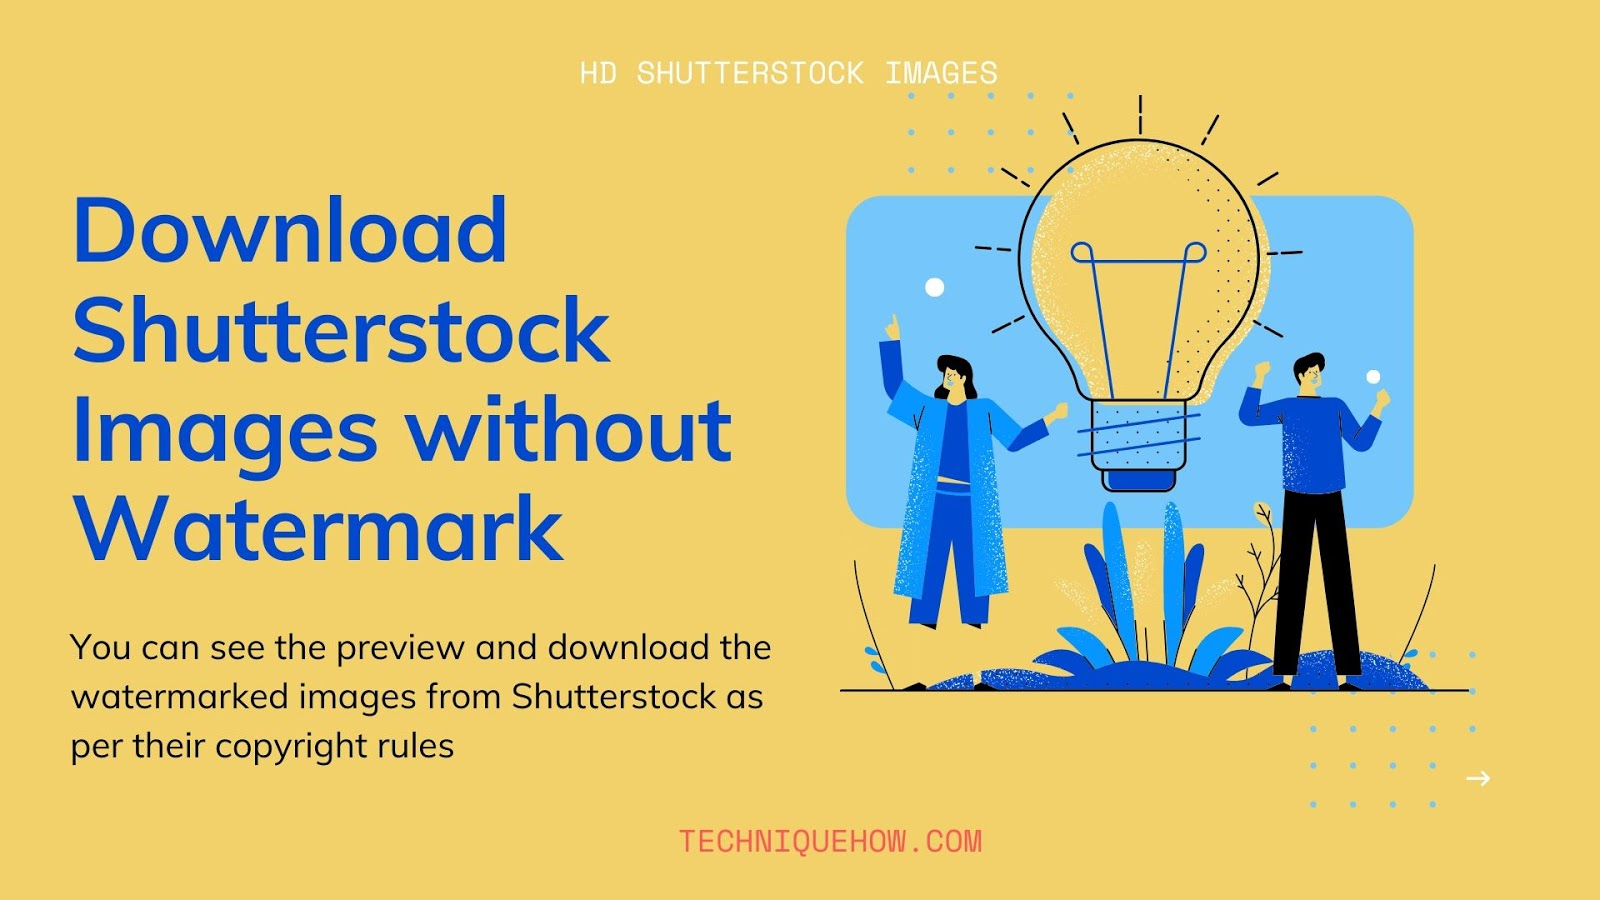 Download Shutterstock Images in HD Quality_Without Watermark